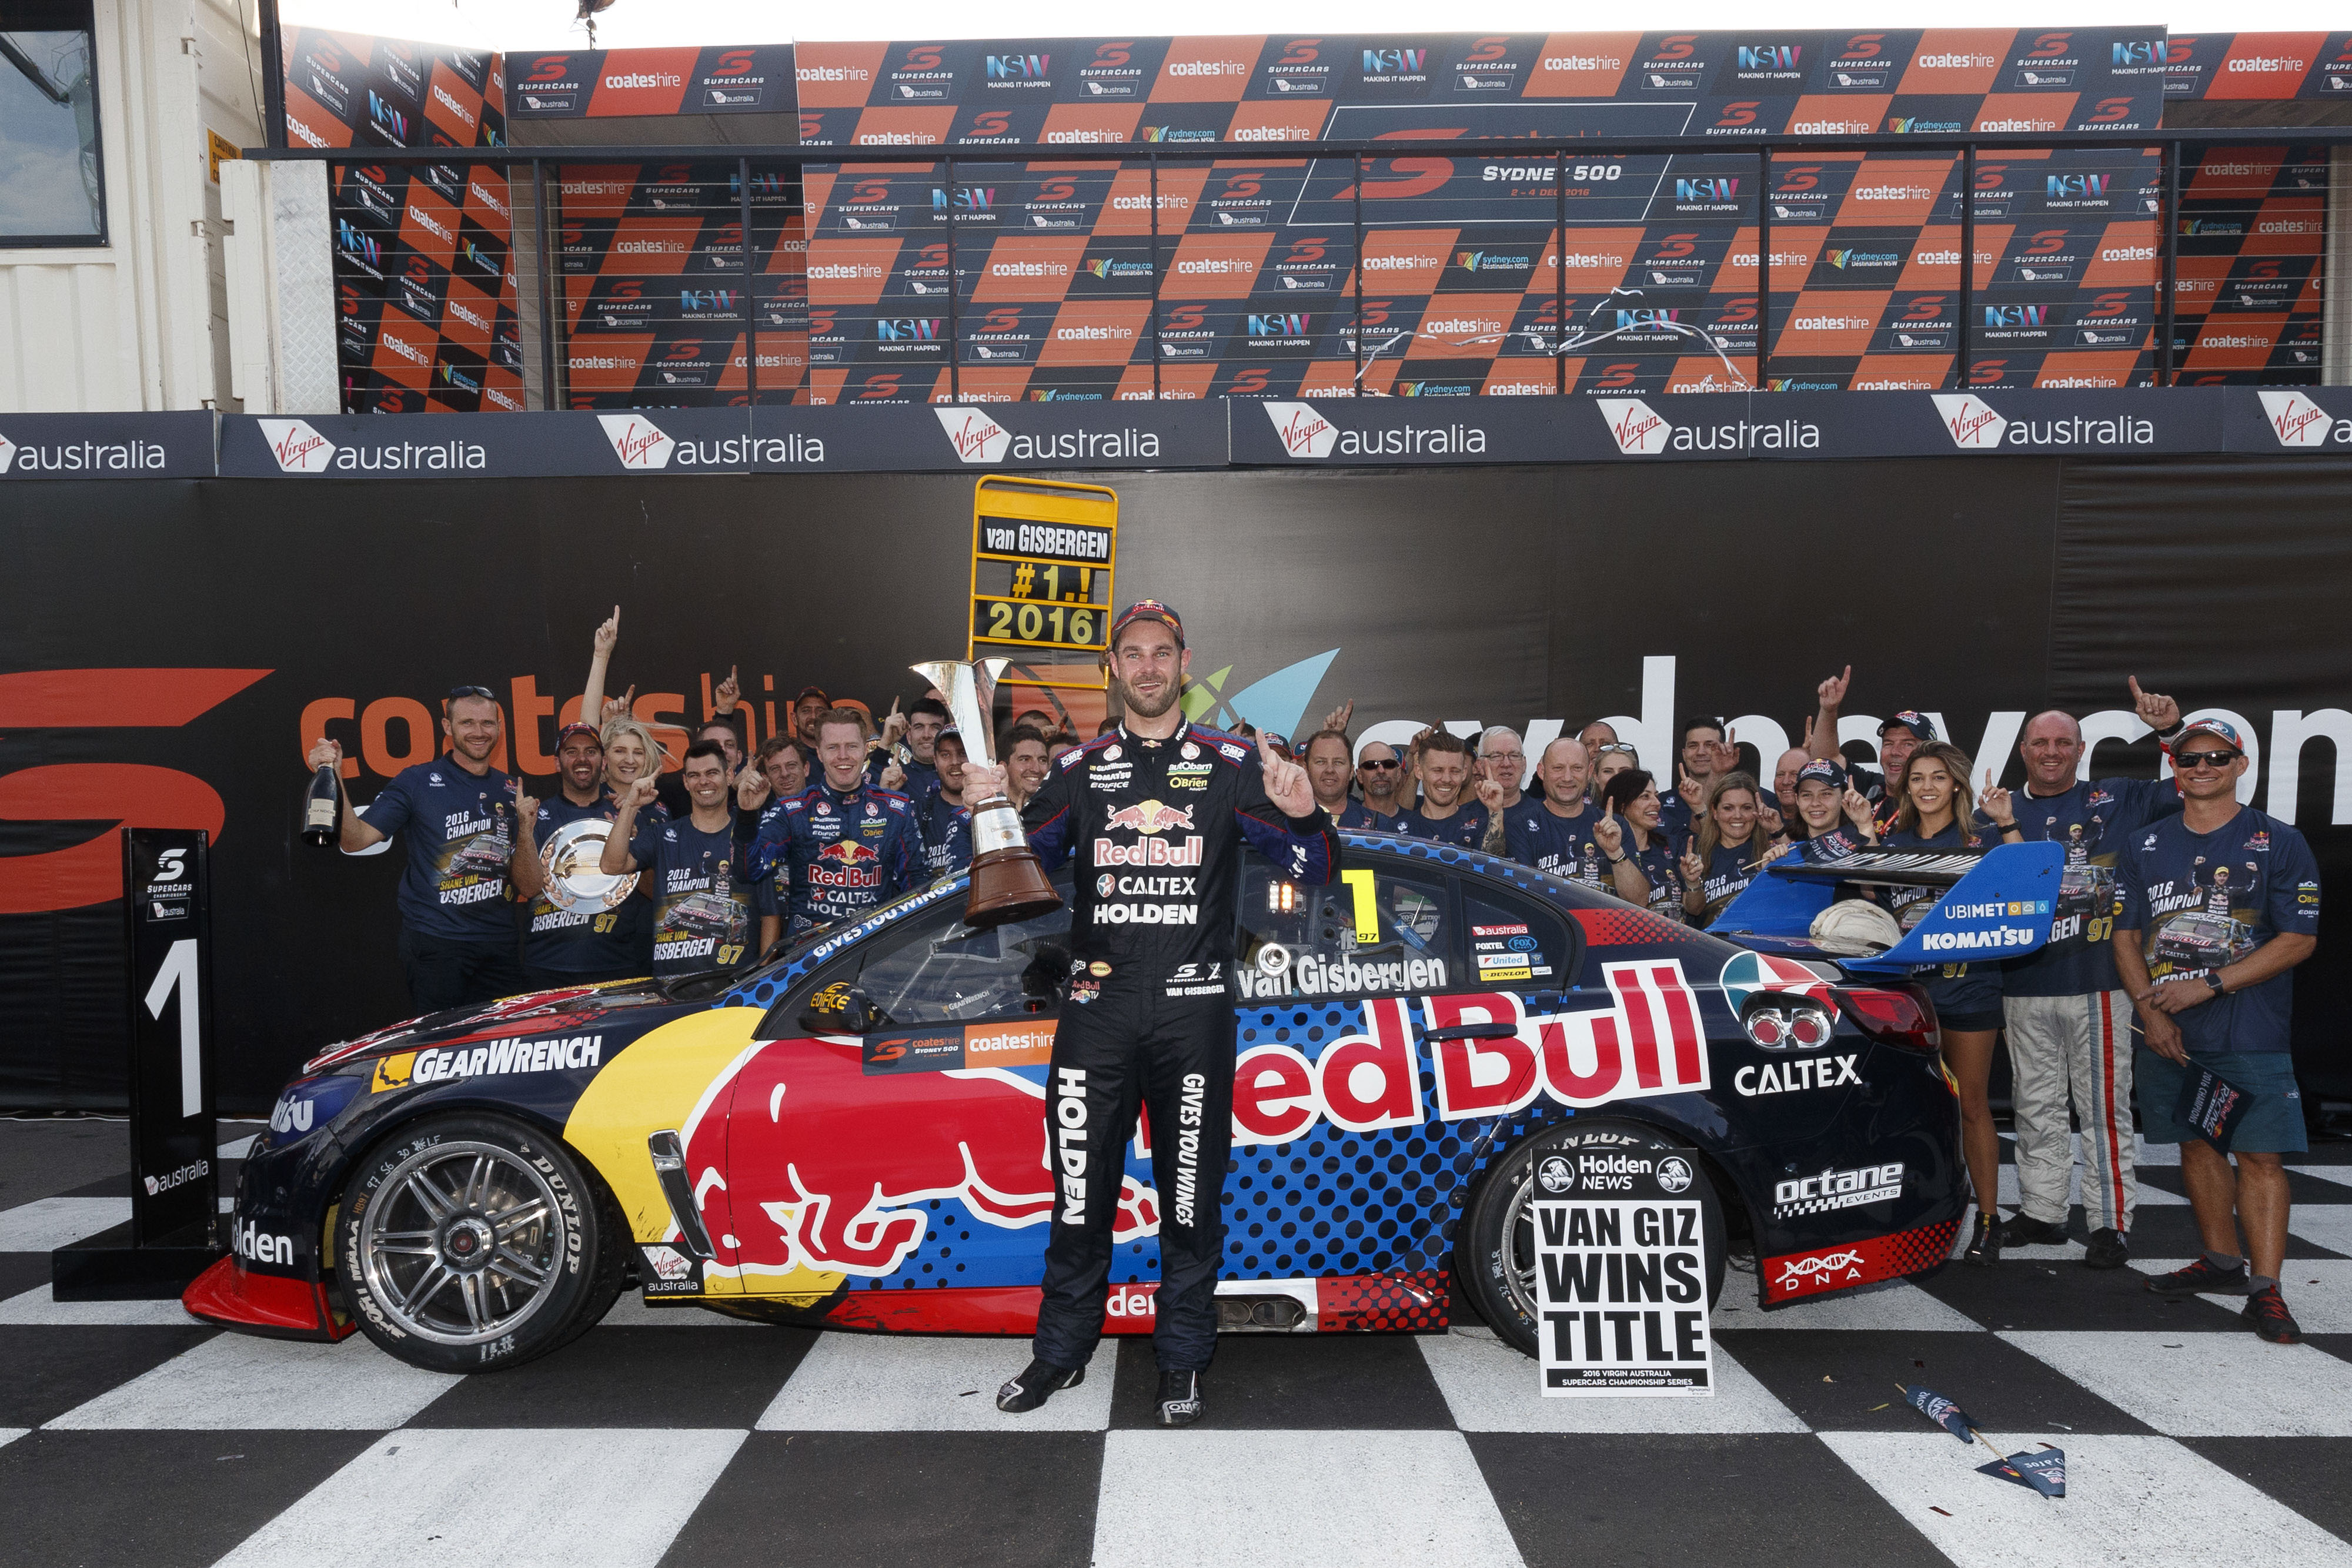 Shane Van Gisbergen of Red Bull Racing Australia wins the 2016 Supercars Championship during the Coates Hire Sydney 500,  at the Homebush Street Circuit, Sydney, New South Wales, December 04, 2016.